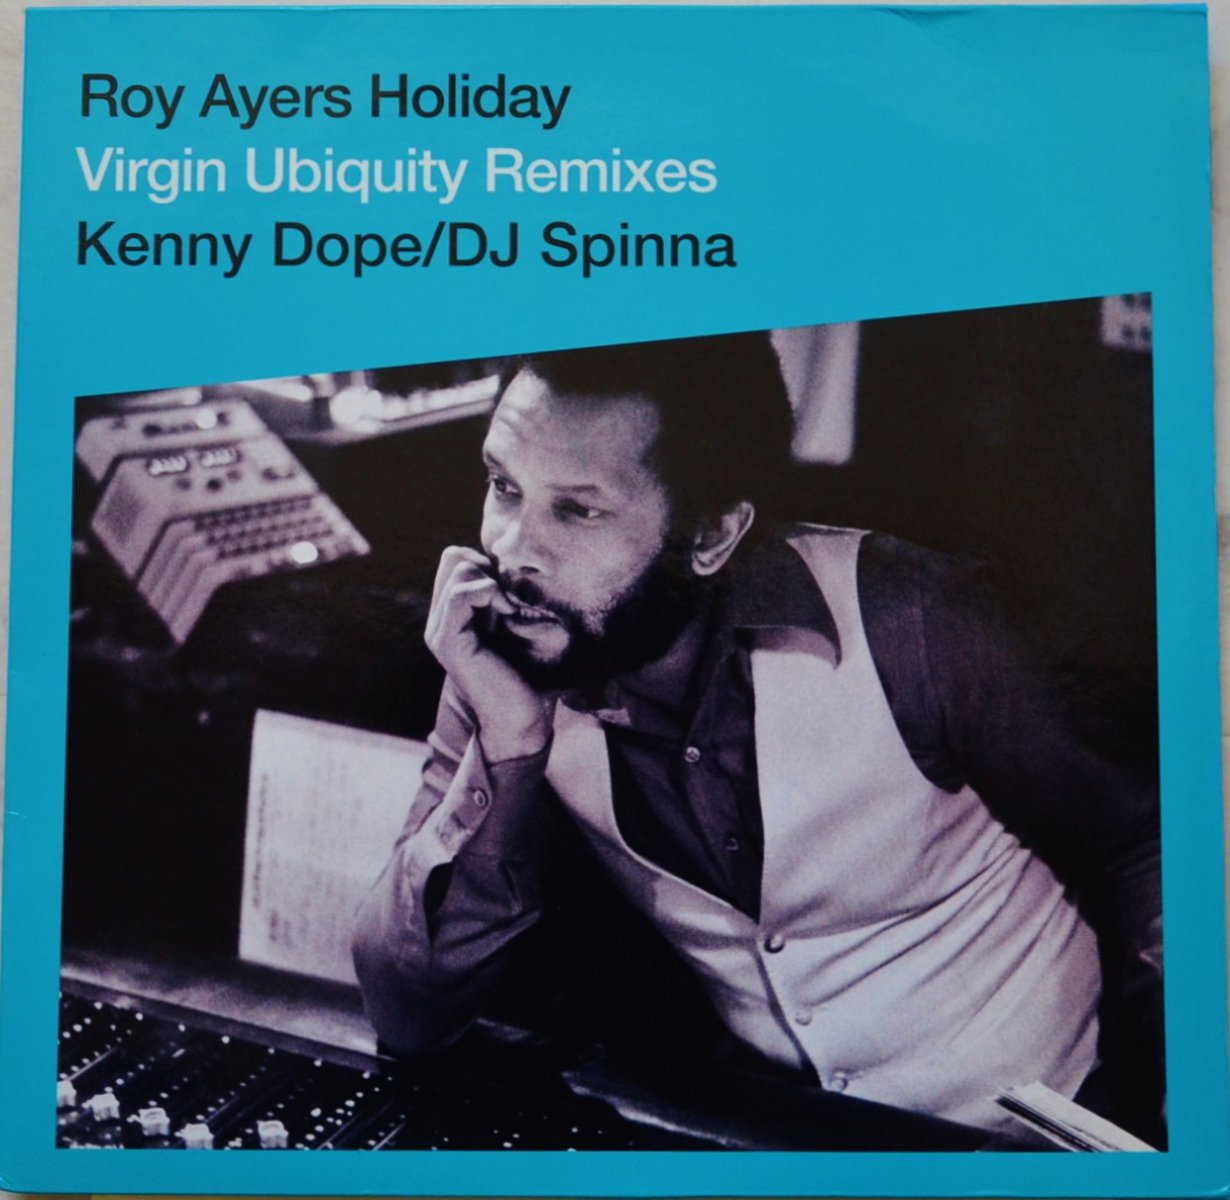 ROY AYERS (KENNY DOPE,DJ SPINNA) / HOLIDAY (VIRGIN UBIQUITY REMIXES) (2×12